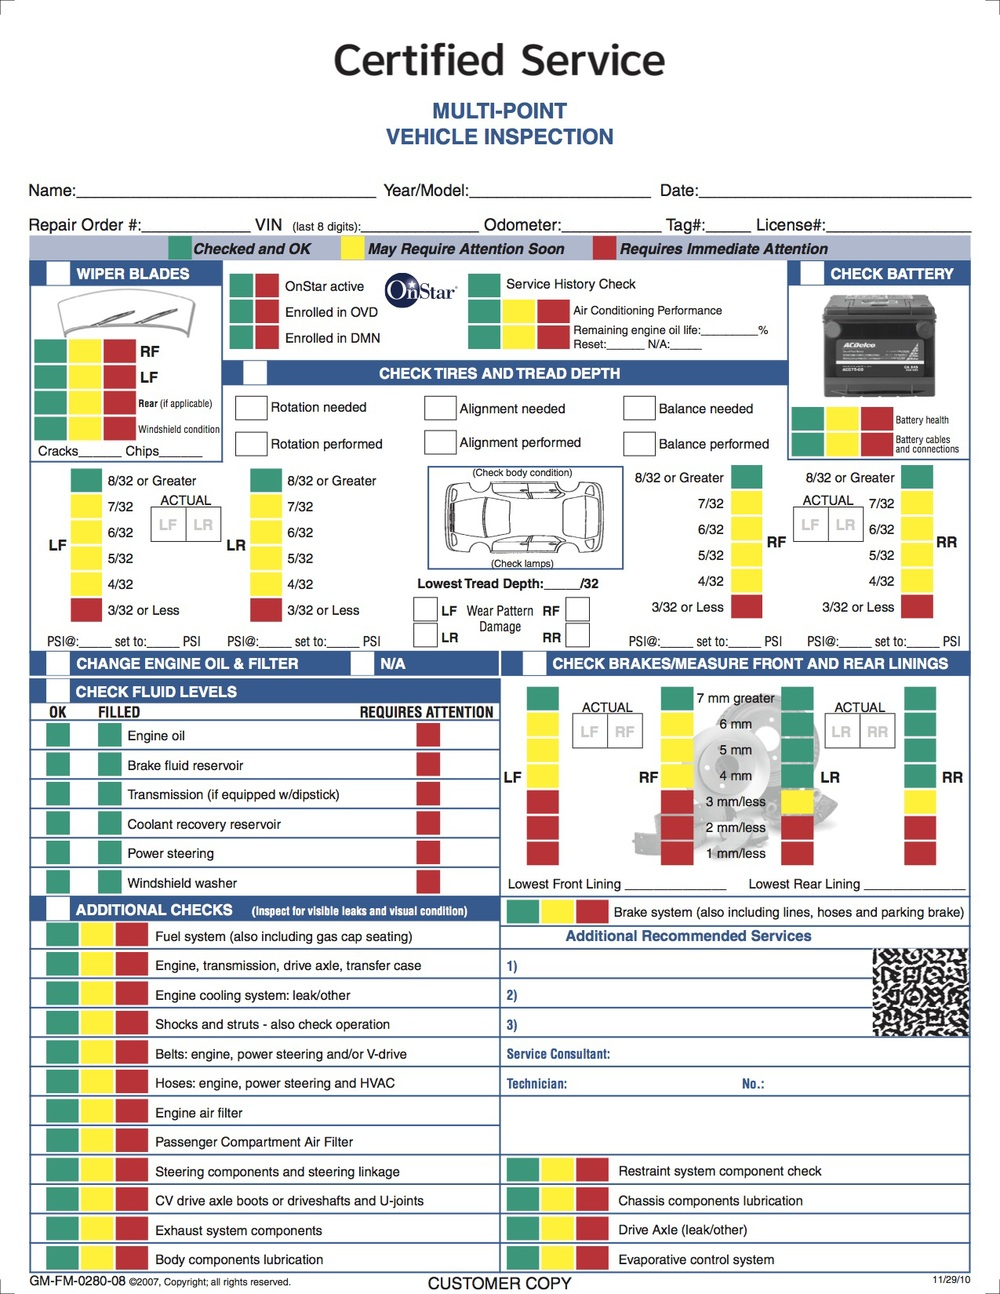 Car-inspection-vehicle-inspection-checklist (2).jpg